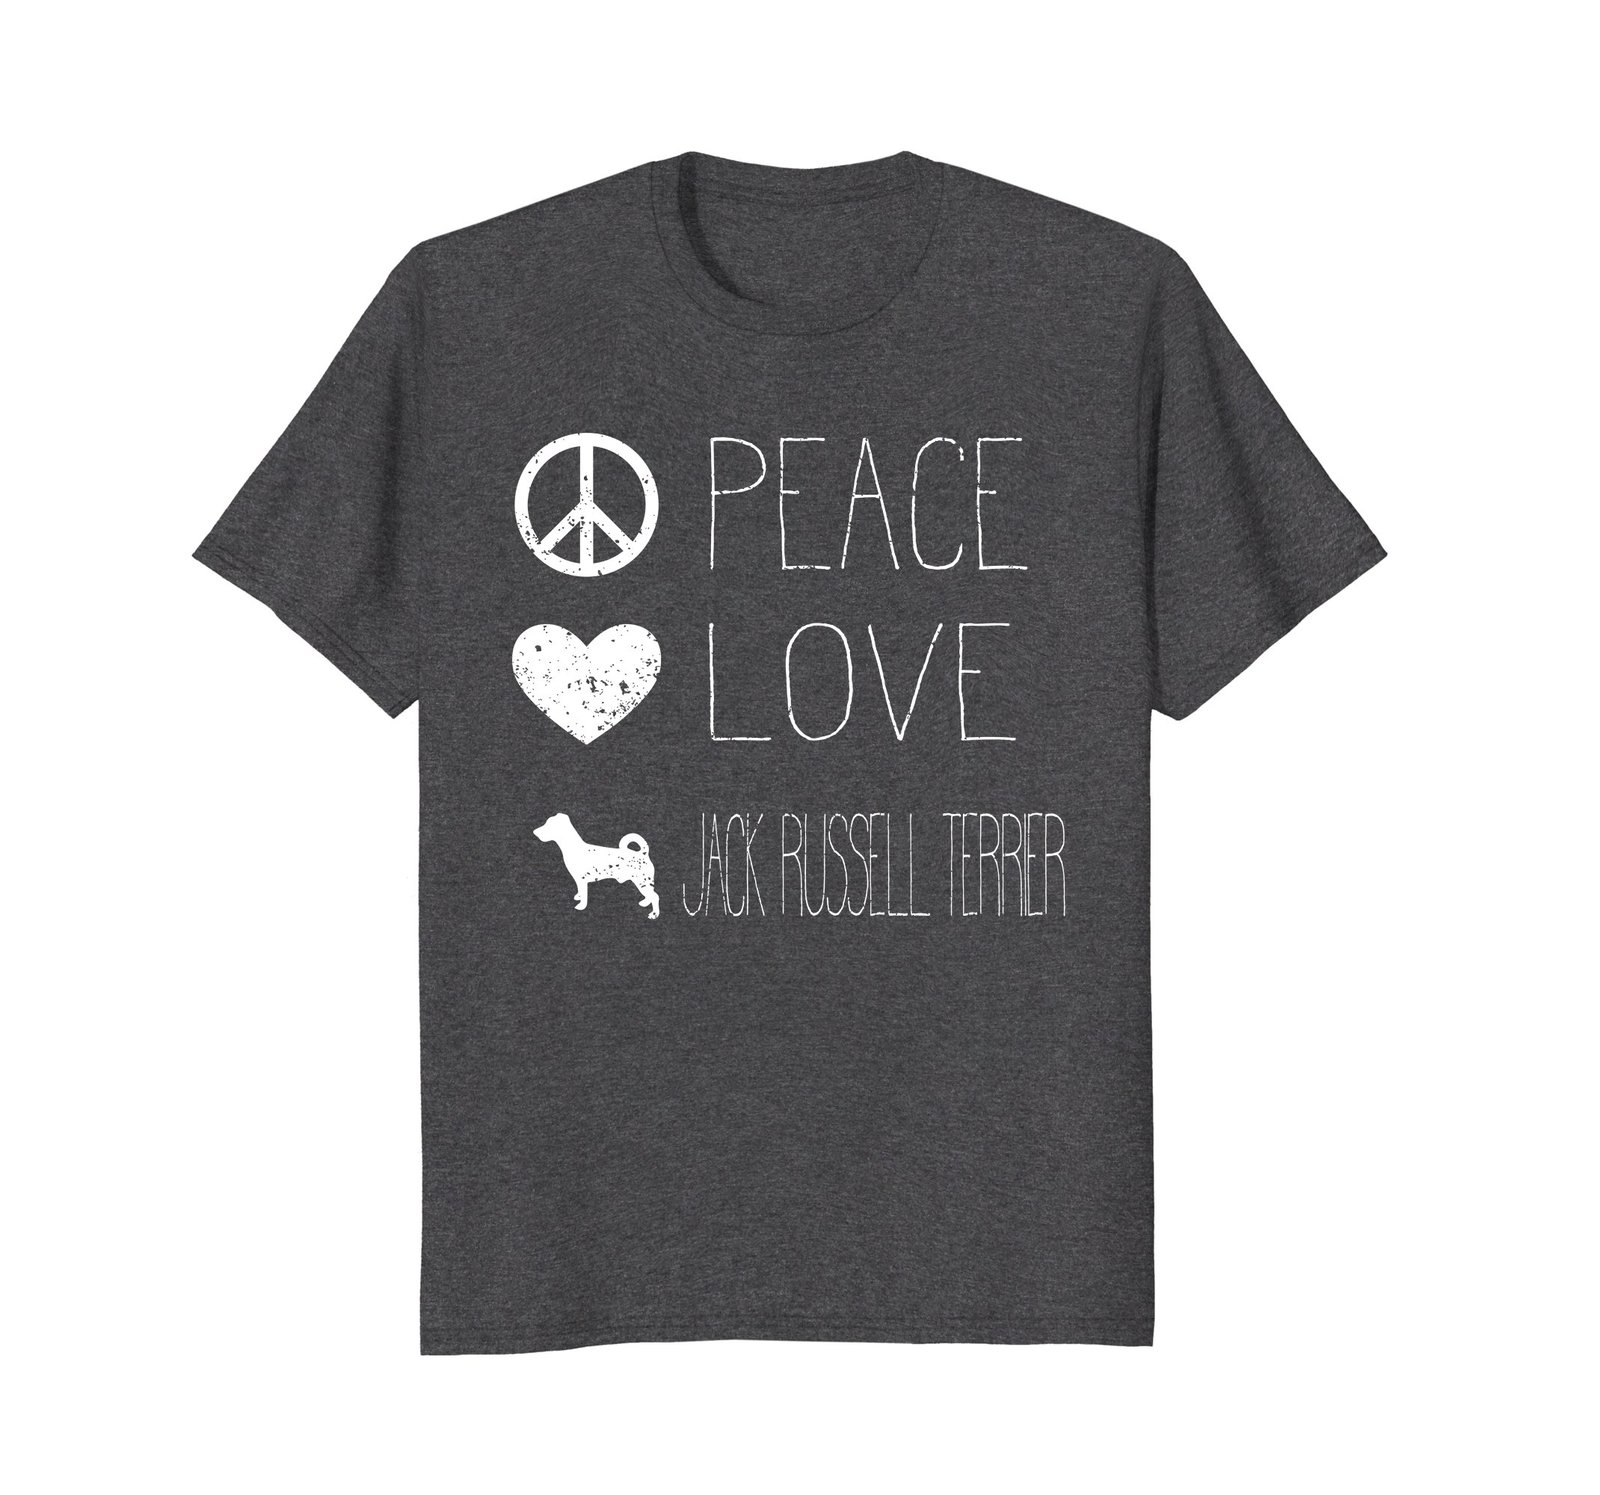 Peace Love And Dogs Shirt Jack Russell Terrier Shirt